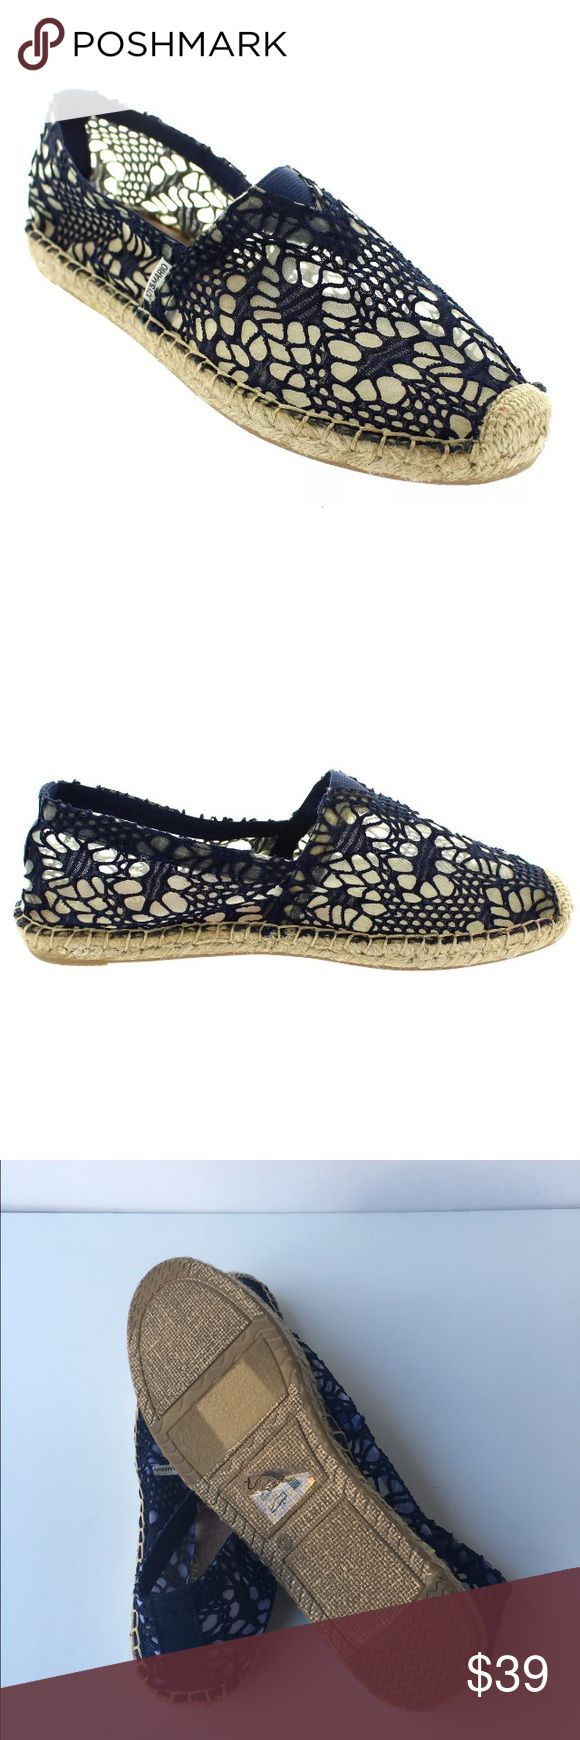 Joy & Mario Navy Lace Slip On Espadrilles New Joy & Mario Navy Cotton Lace pattern fully lined slip on Espadrilles... Leather padded footbed for comfort, rubber soles for traction.New without box Joy & Mario Shoes Espadrilles